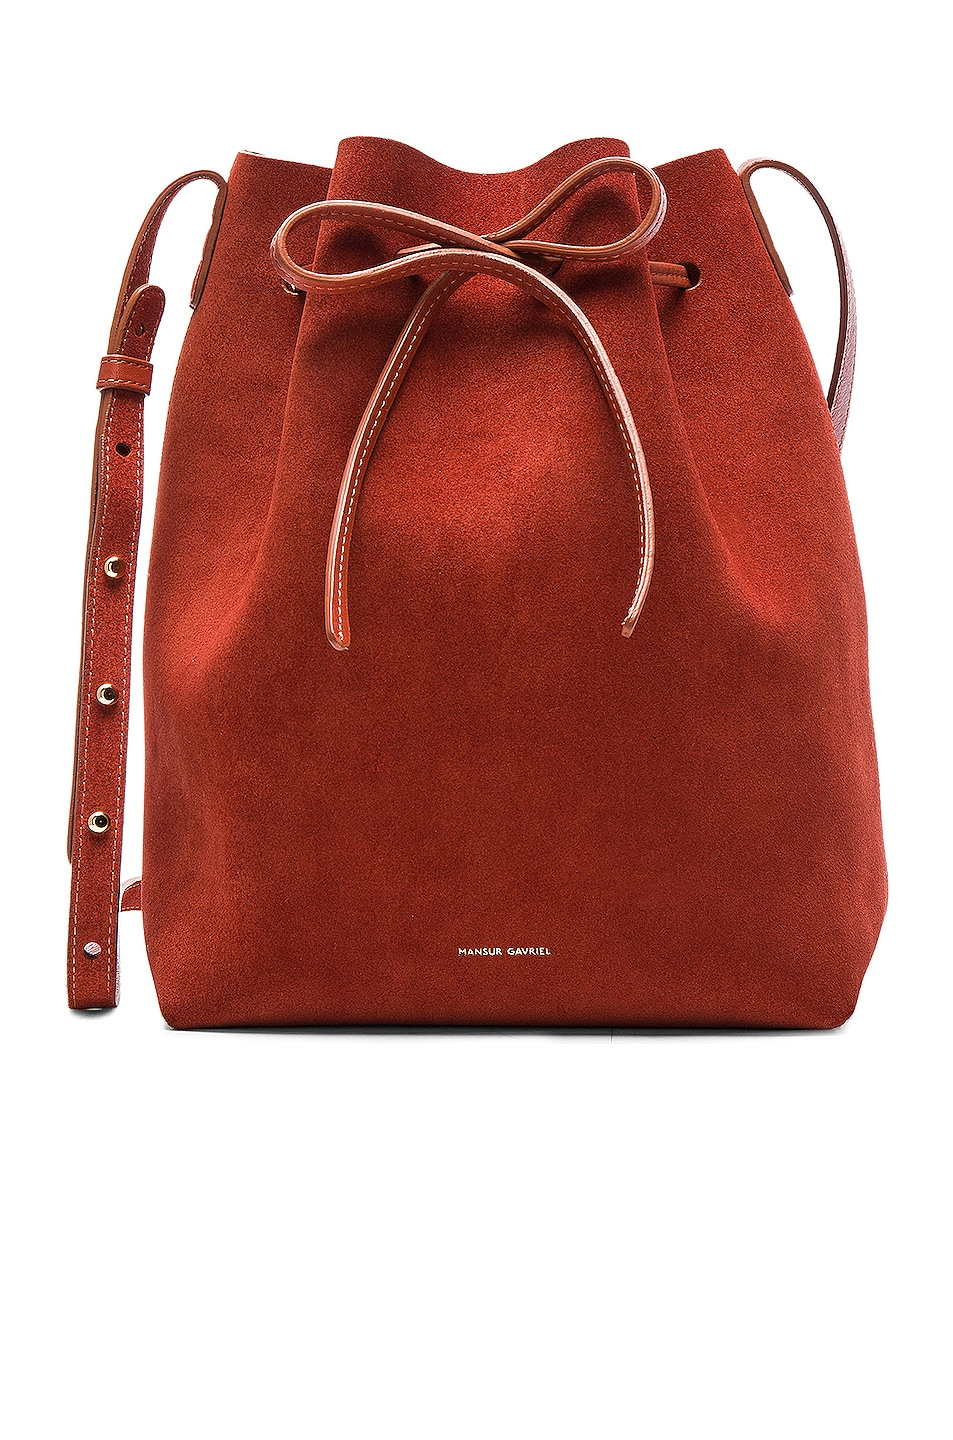 Image 1 of Mansur Gavriel Bucket Bag in Brick Suede